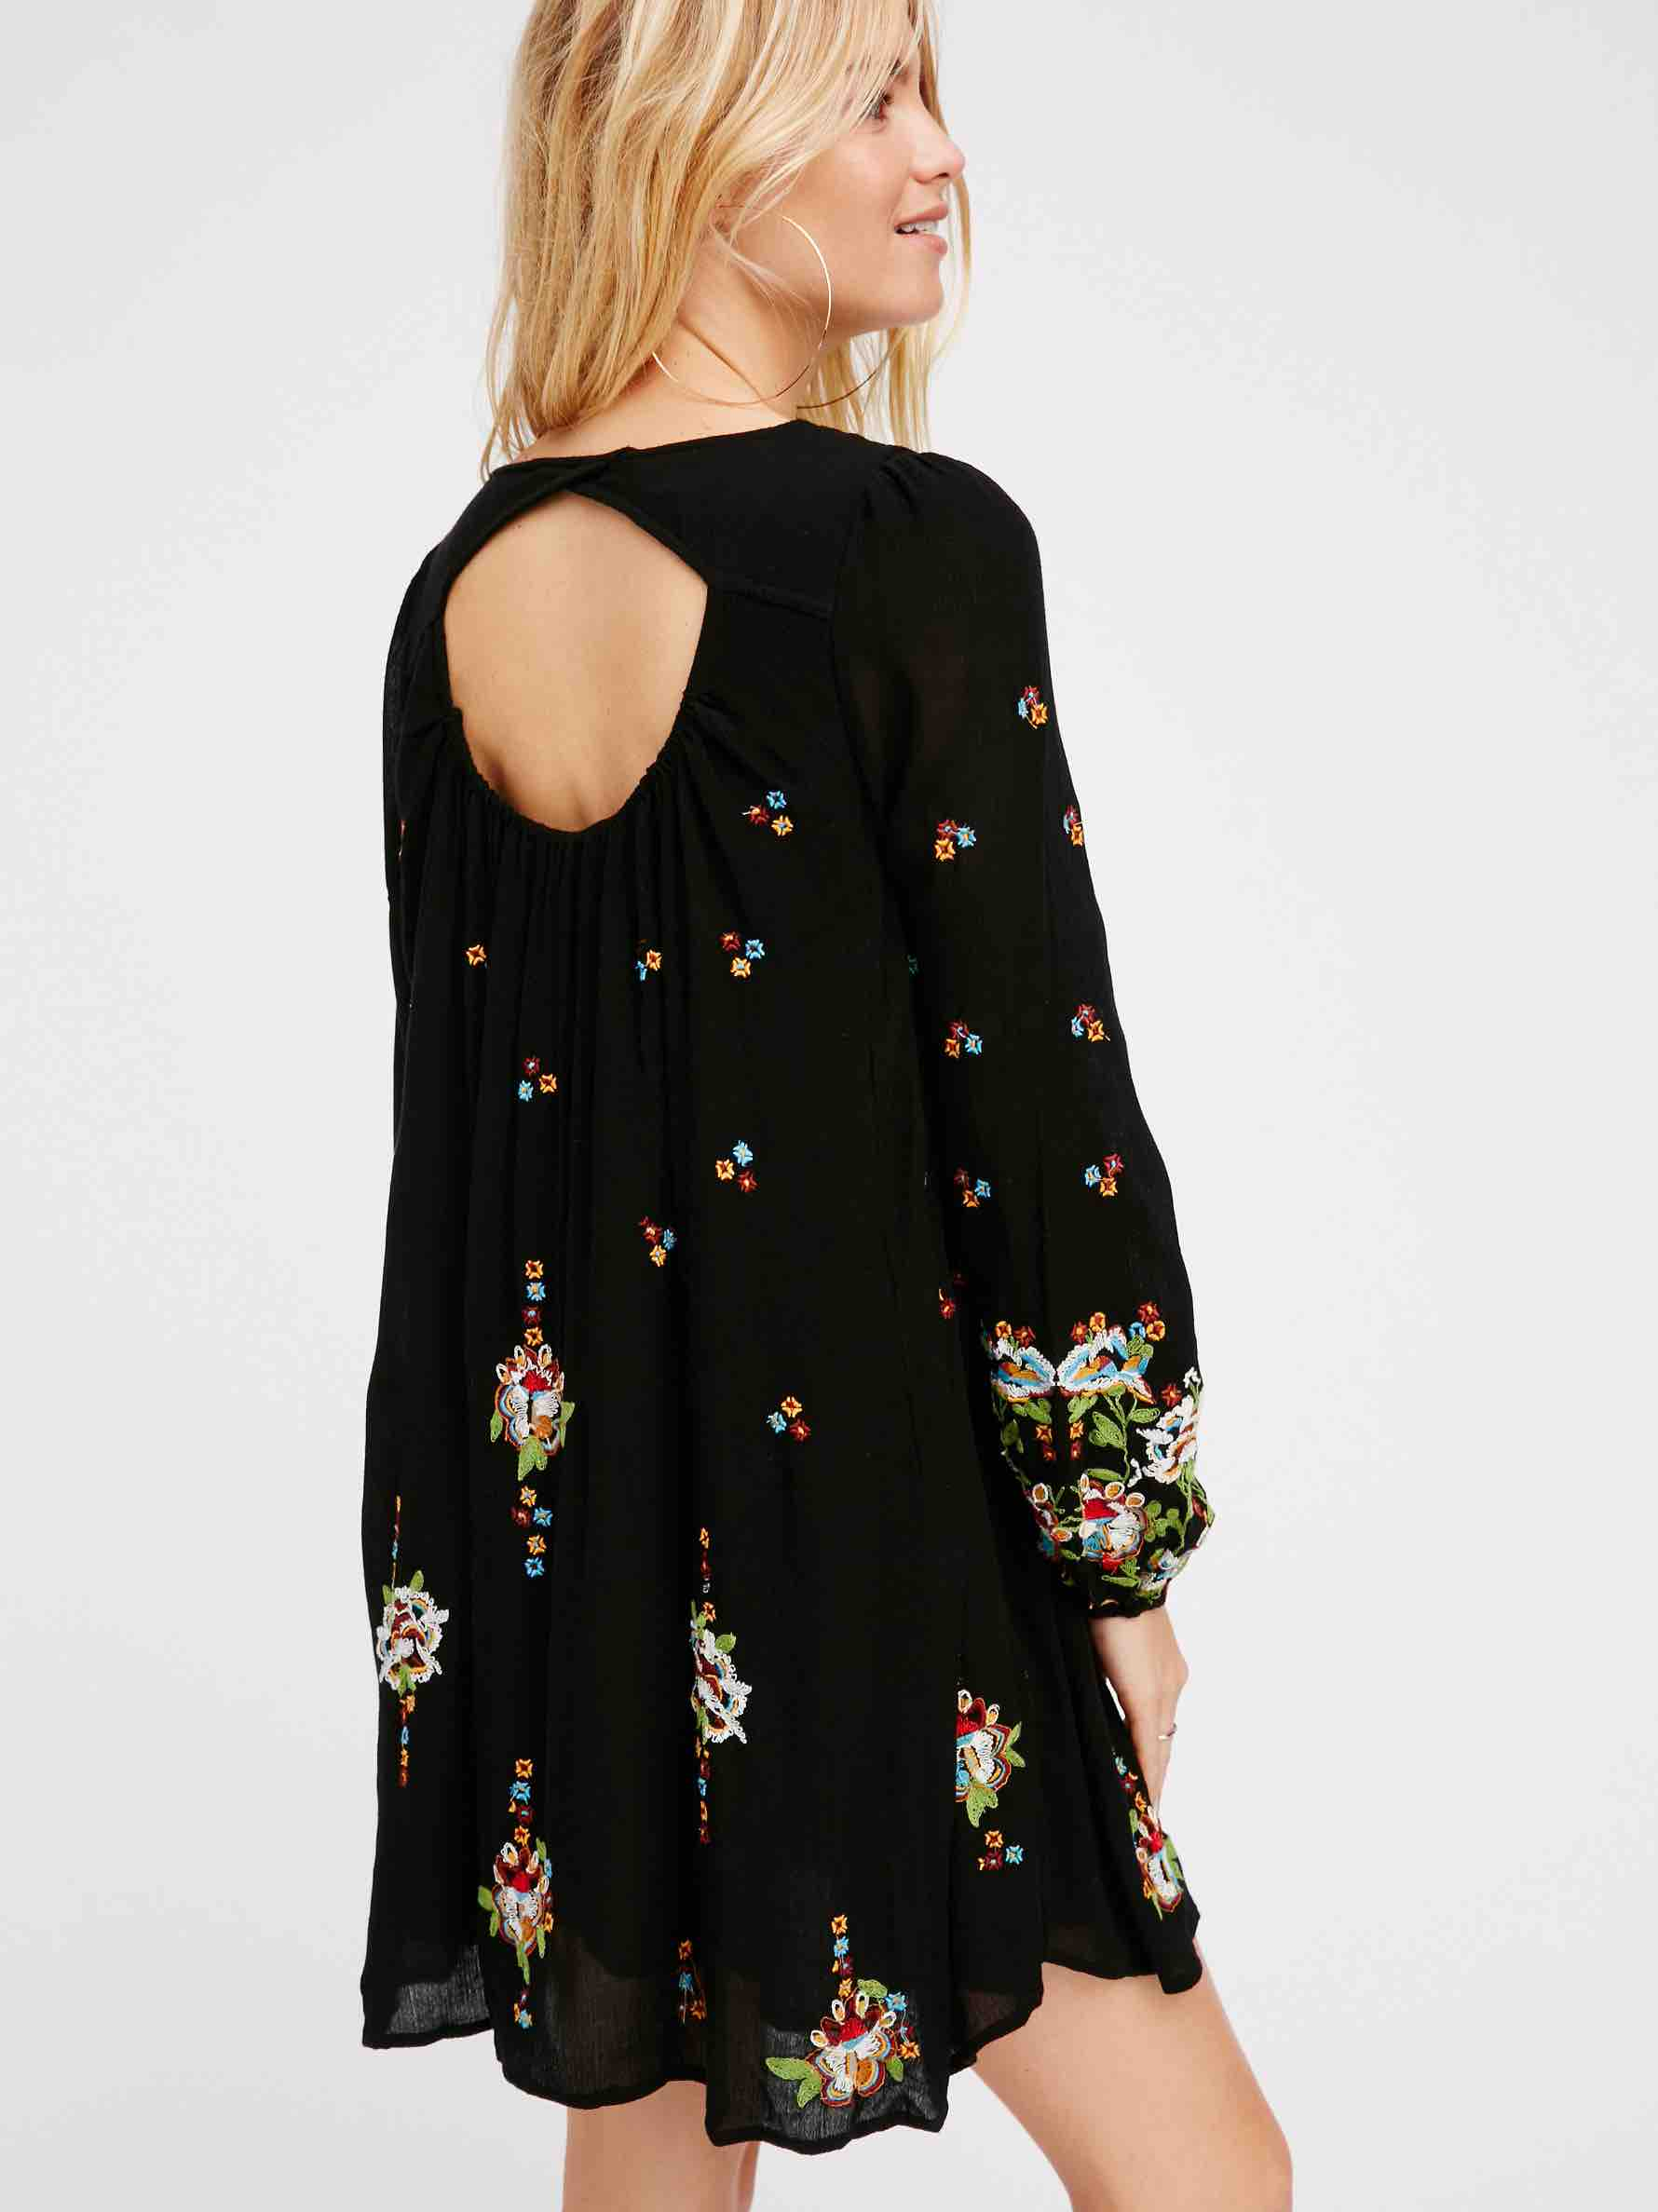 Free People Oxford Embroidered Mini, Buy online